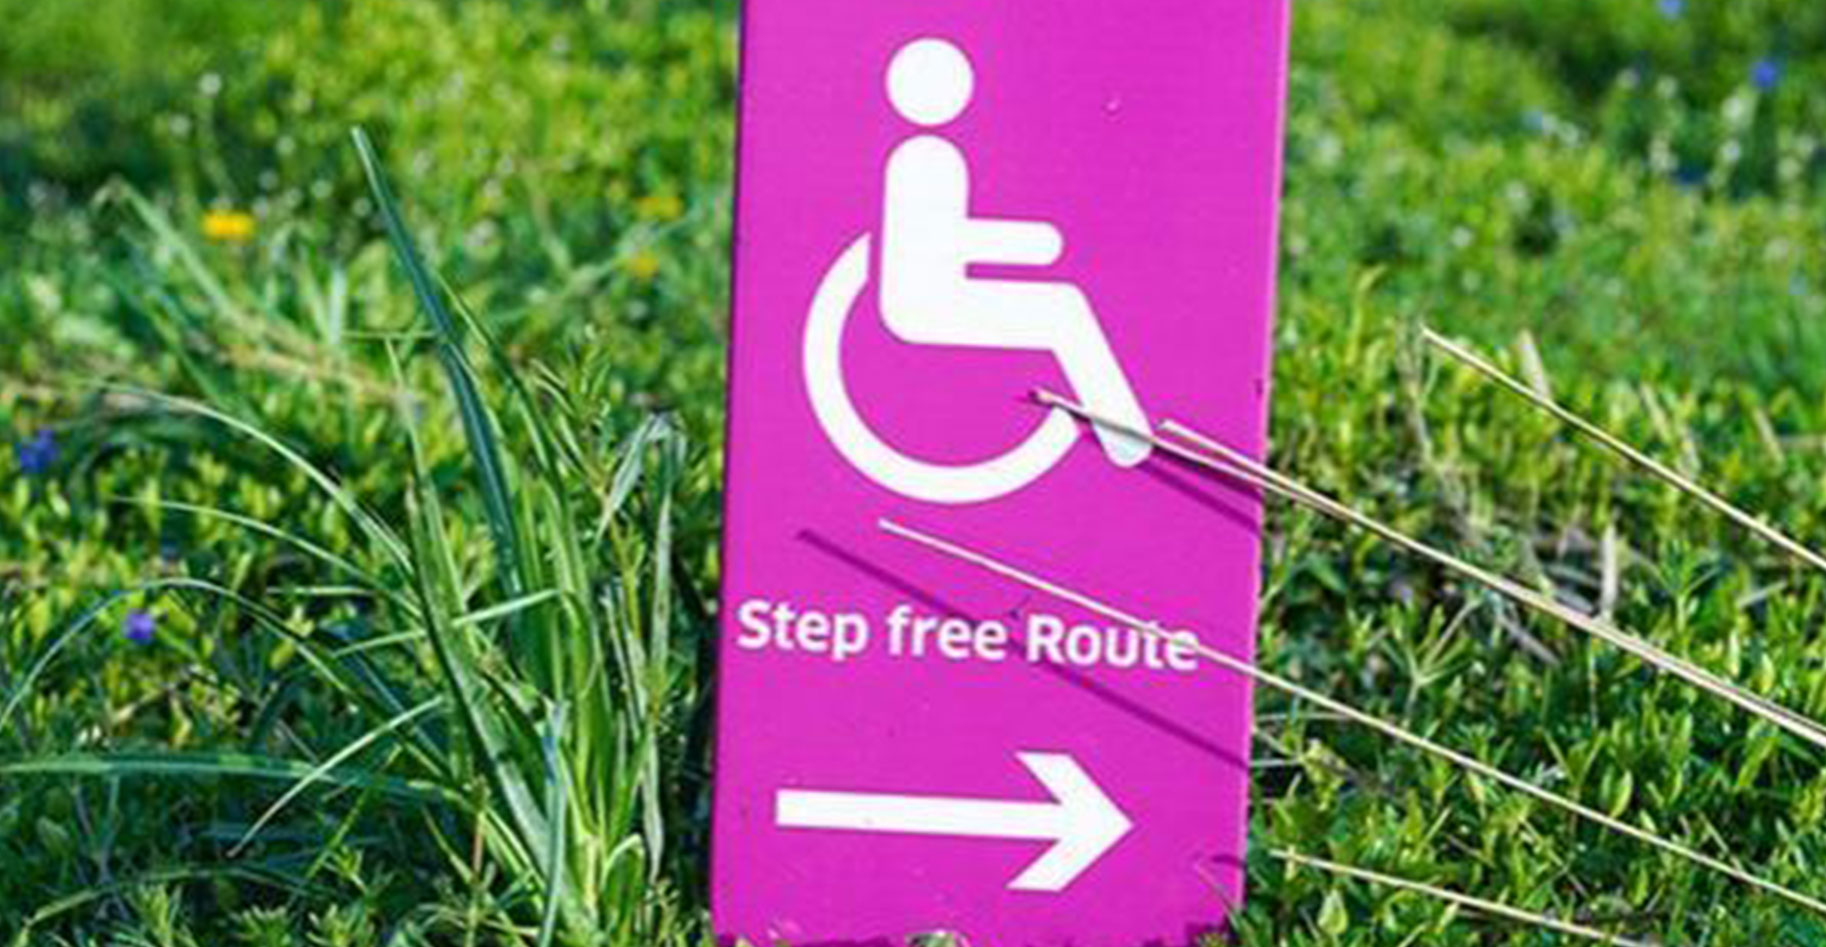 Disabilities ramp sign in grass.